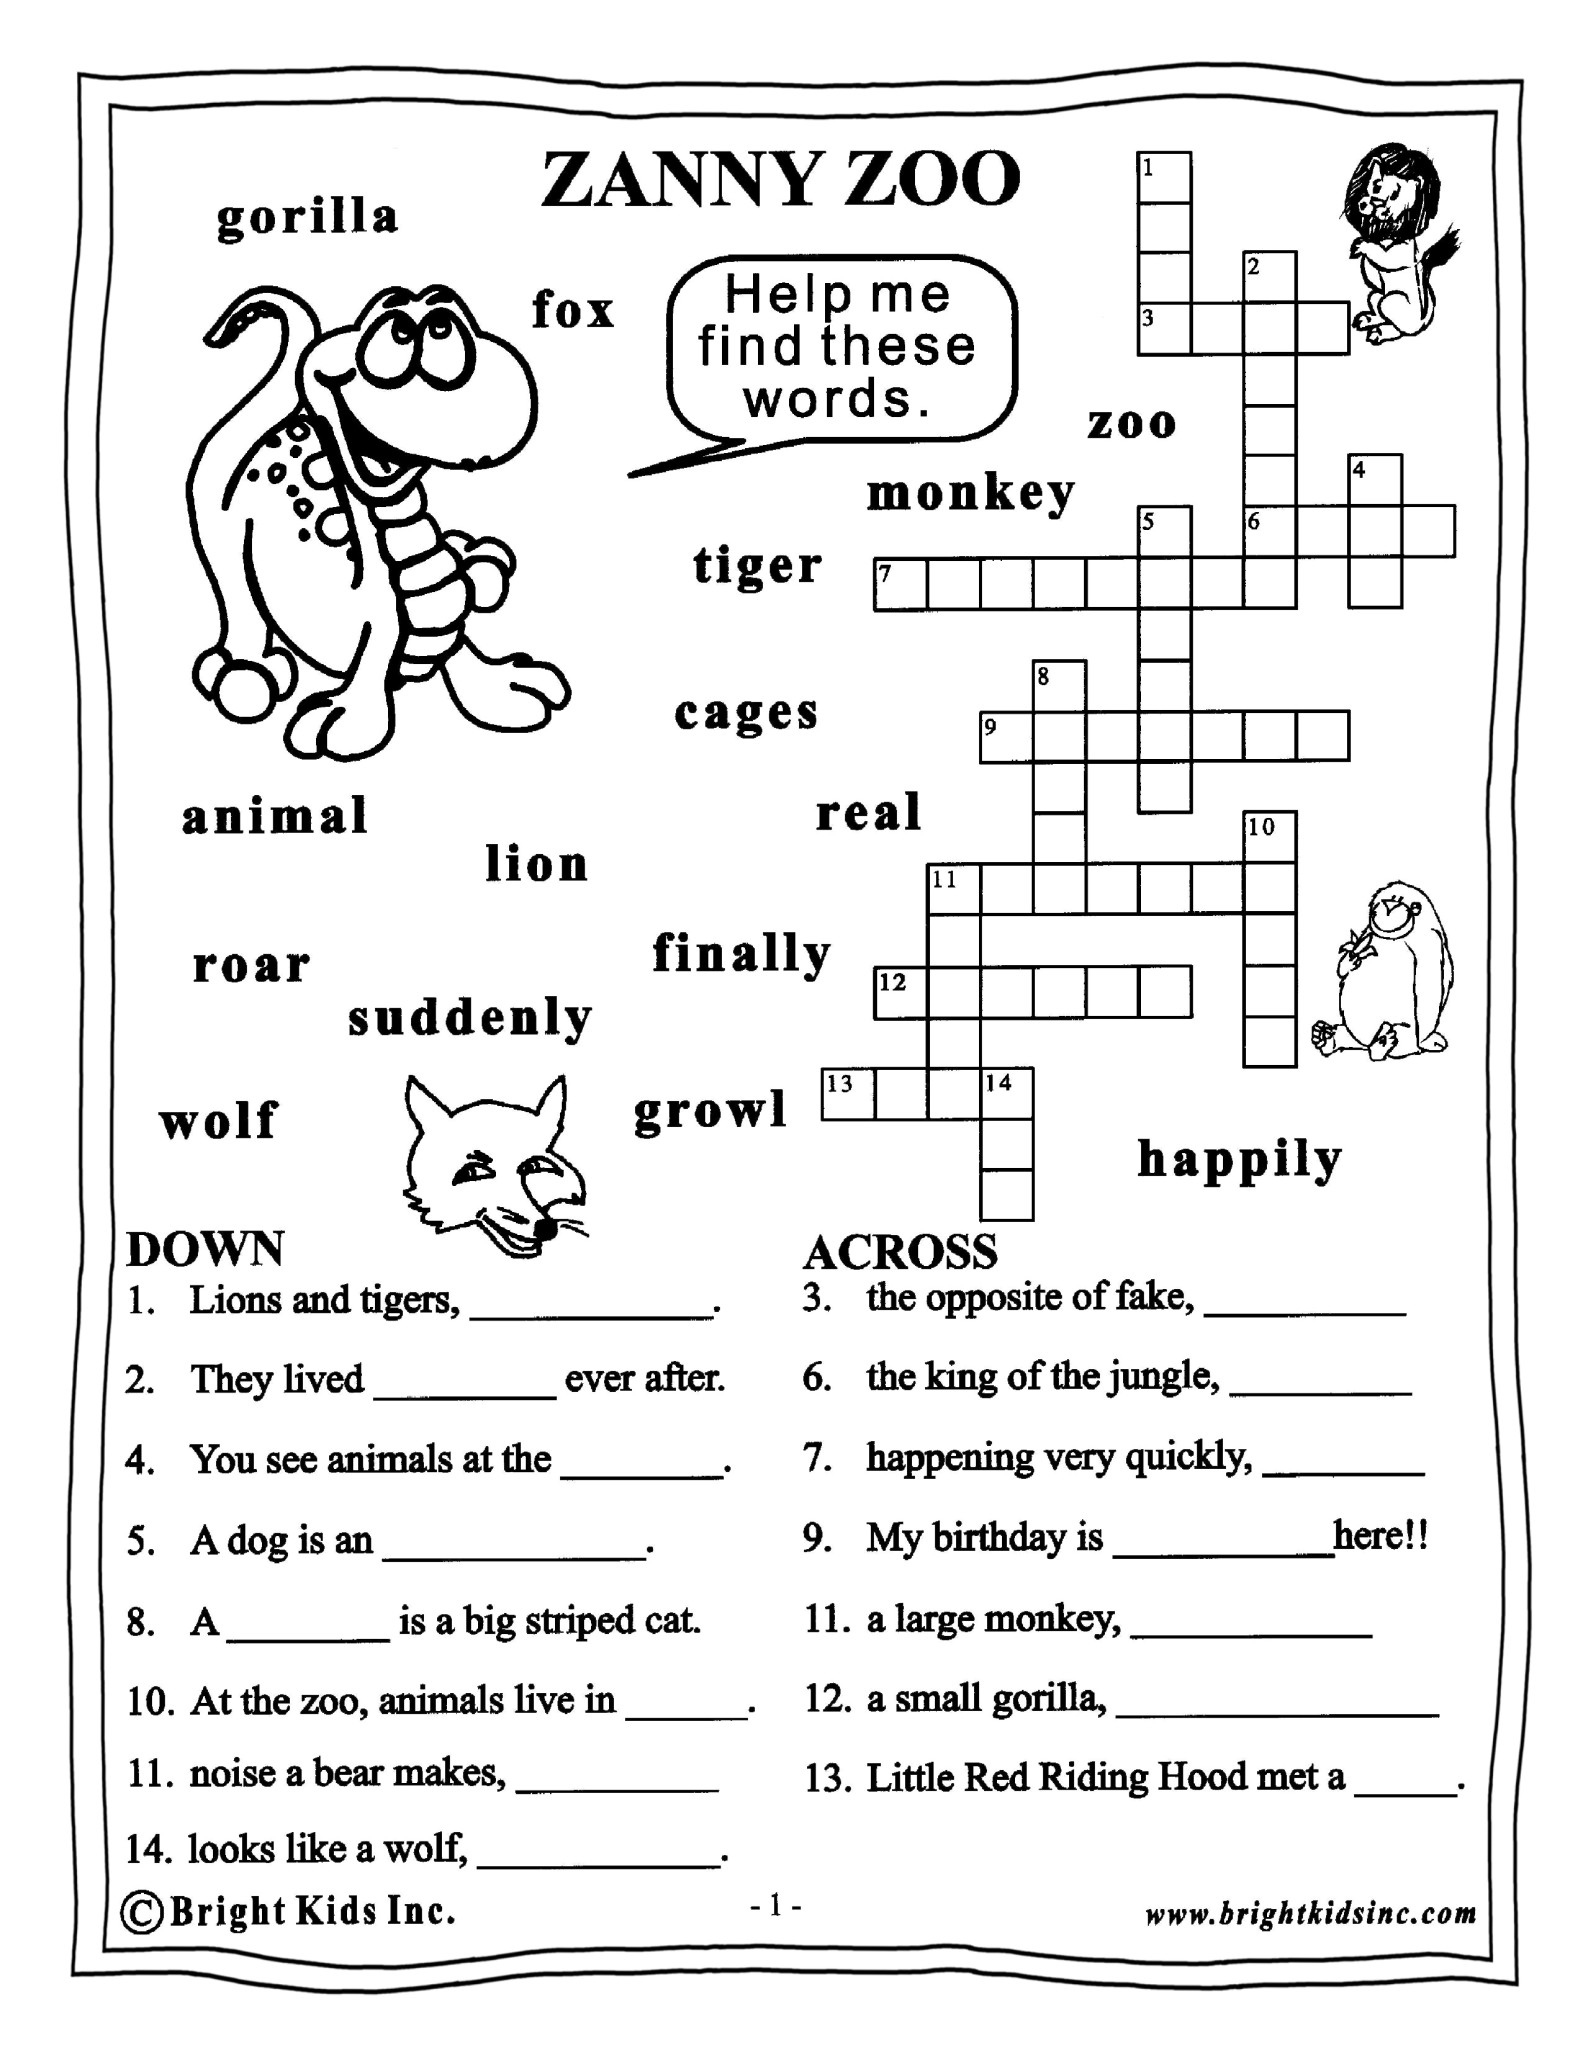 Worksheet Grade 3 English Worksheet grade 3 english worksheets davezan free for grammar scalien